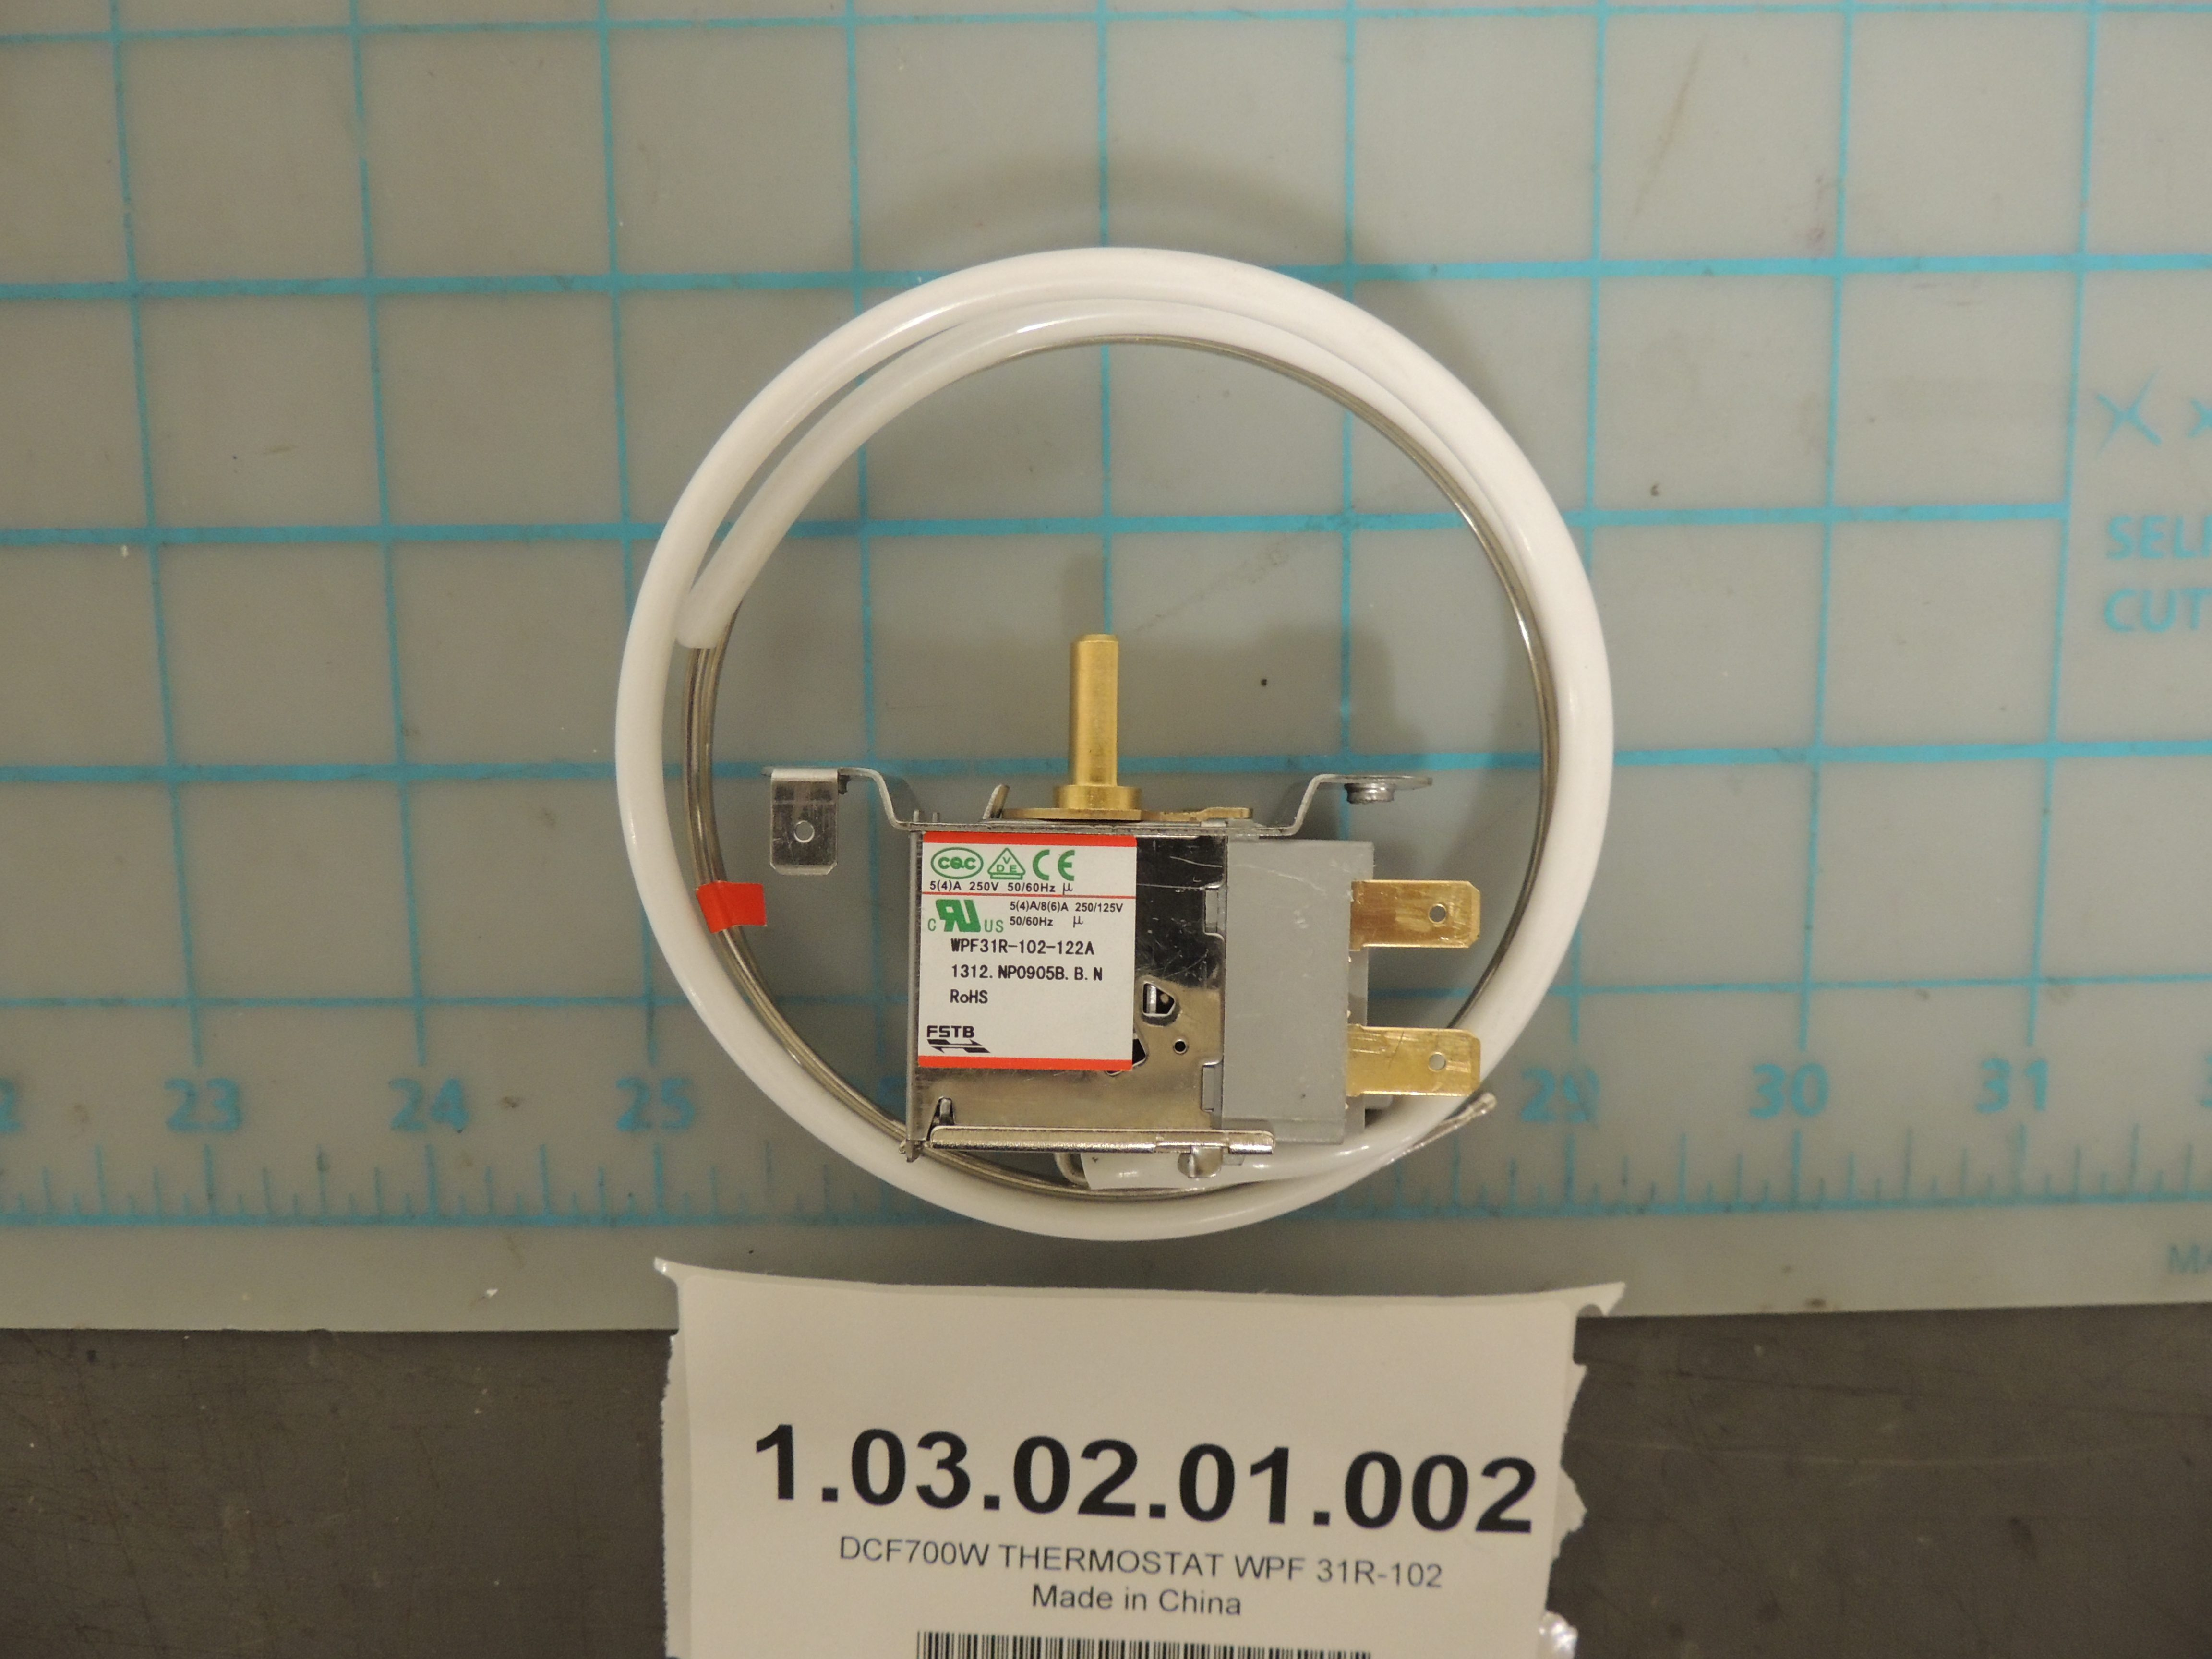 DCF700W THERMOSTAT WPF 31R-102